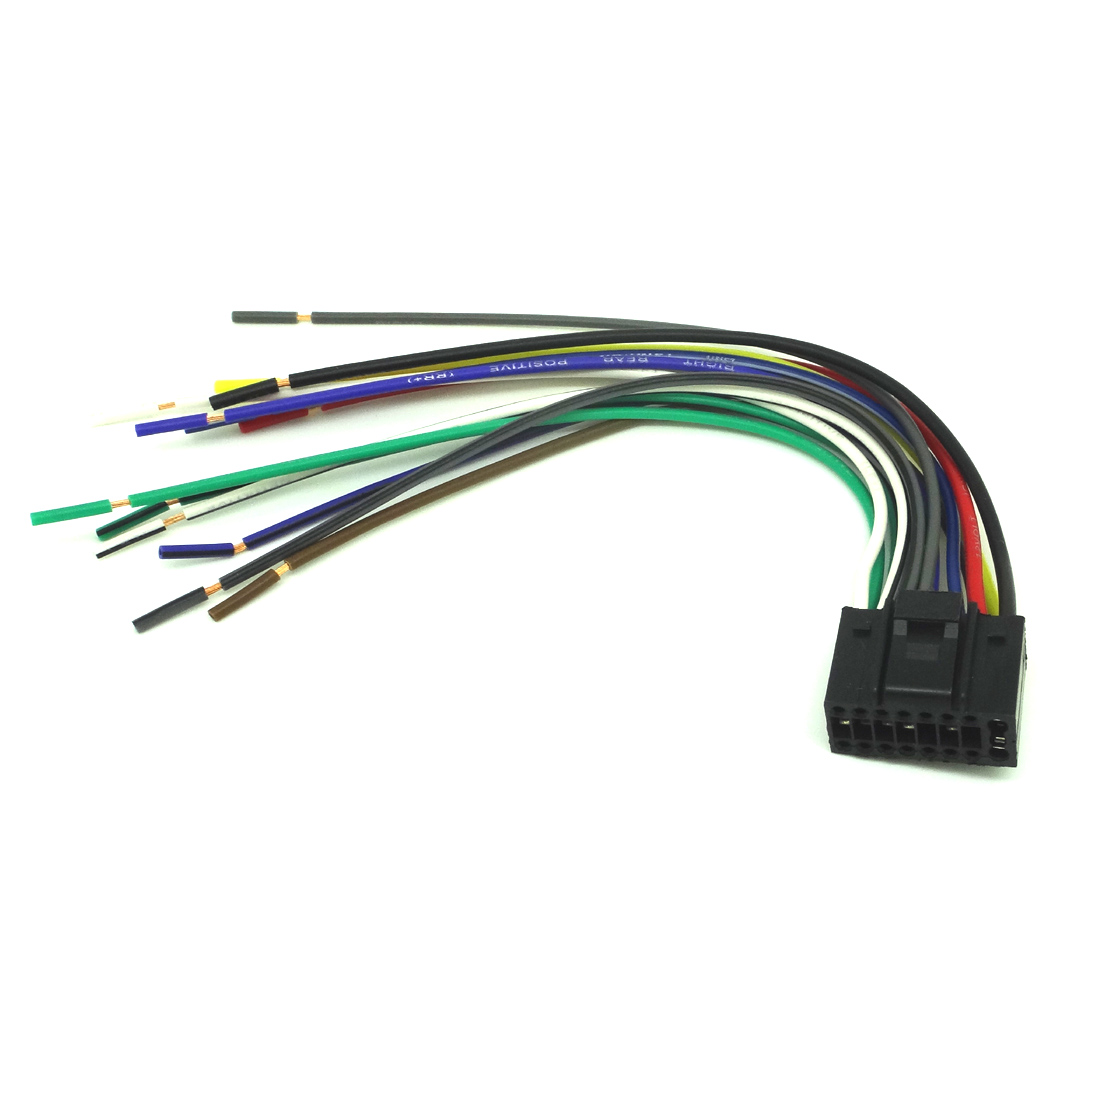 player 16 pin radio car audio stereo wire harness for. Black Bedroom Furniture Sets. Home Design Ideas